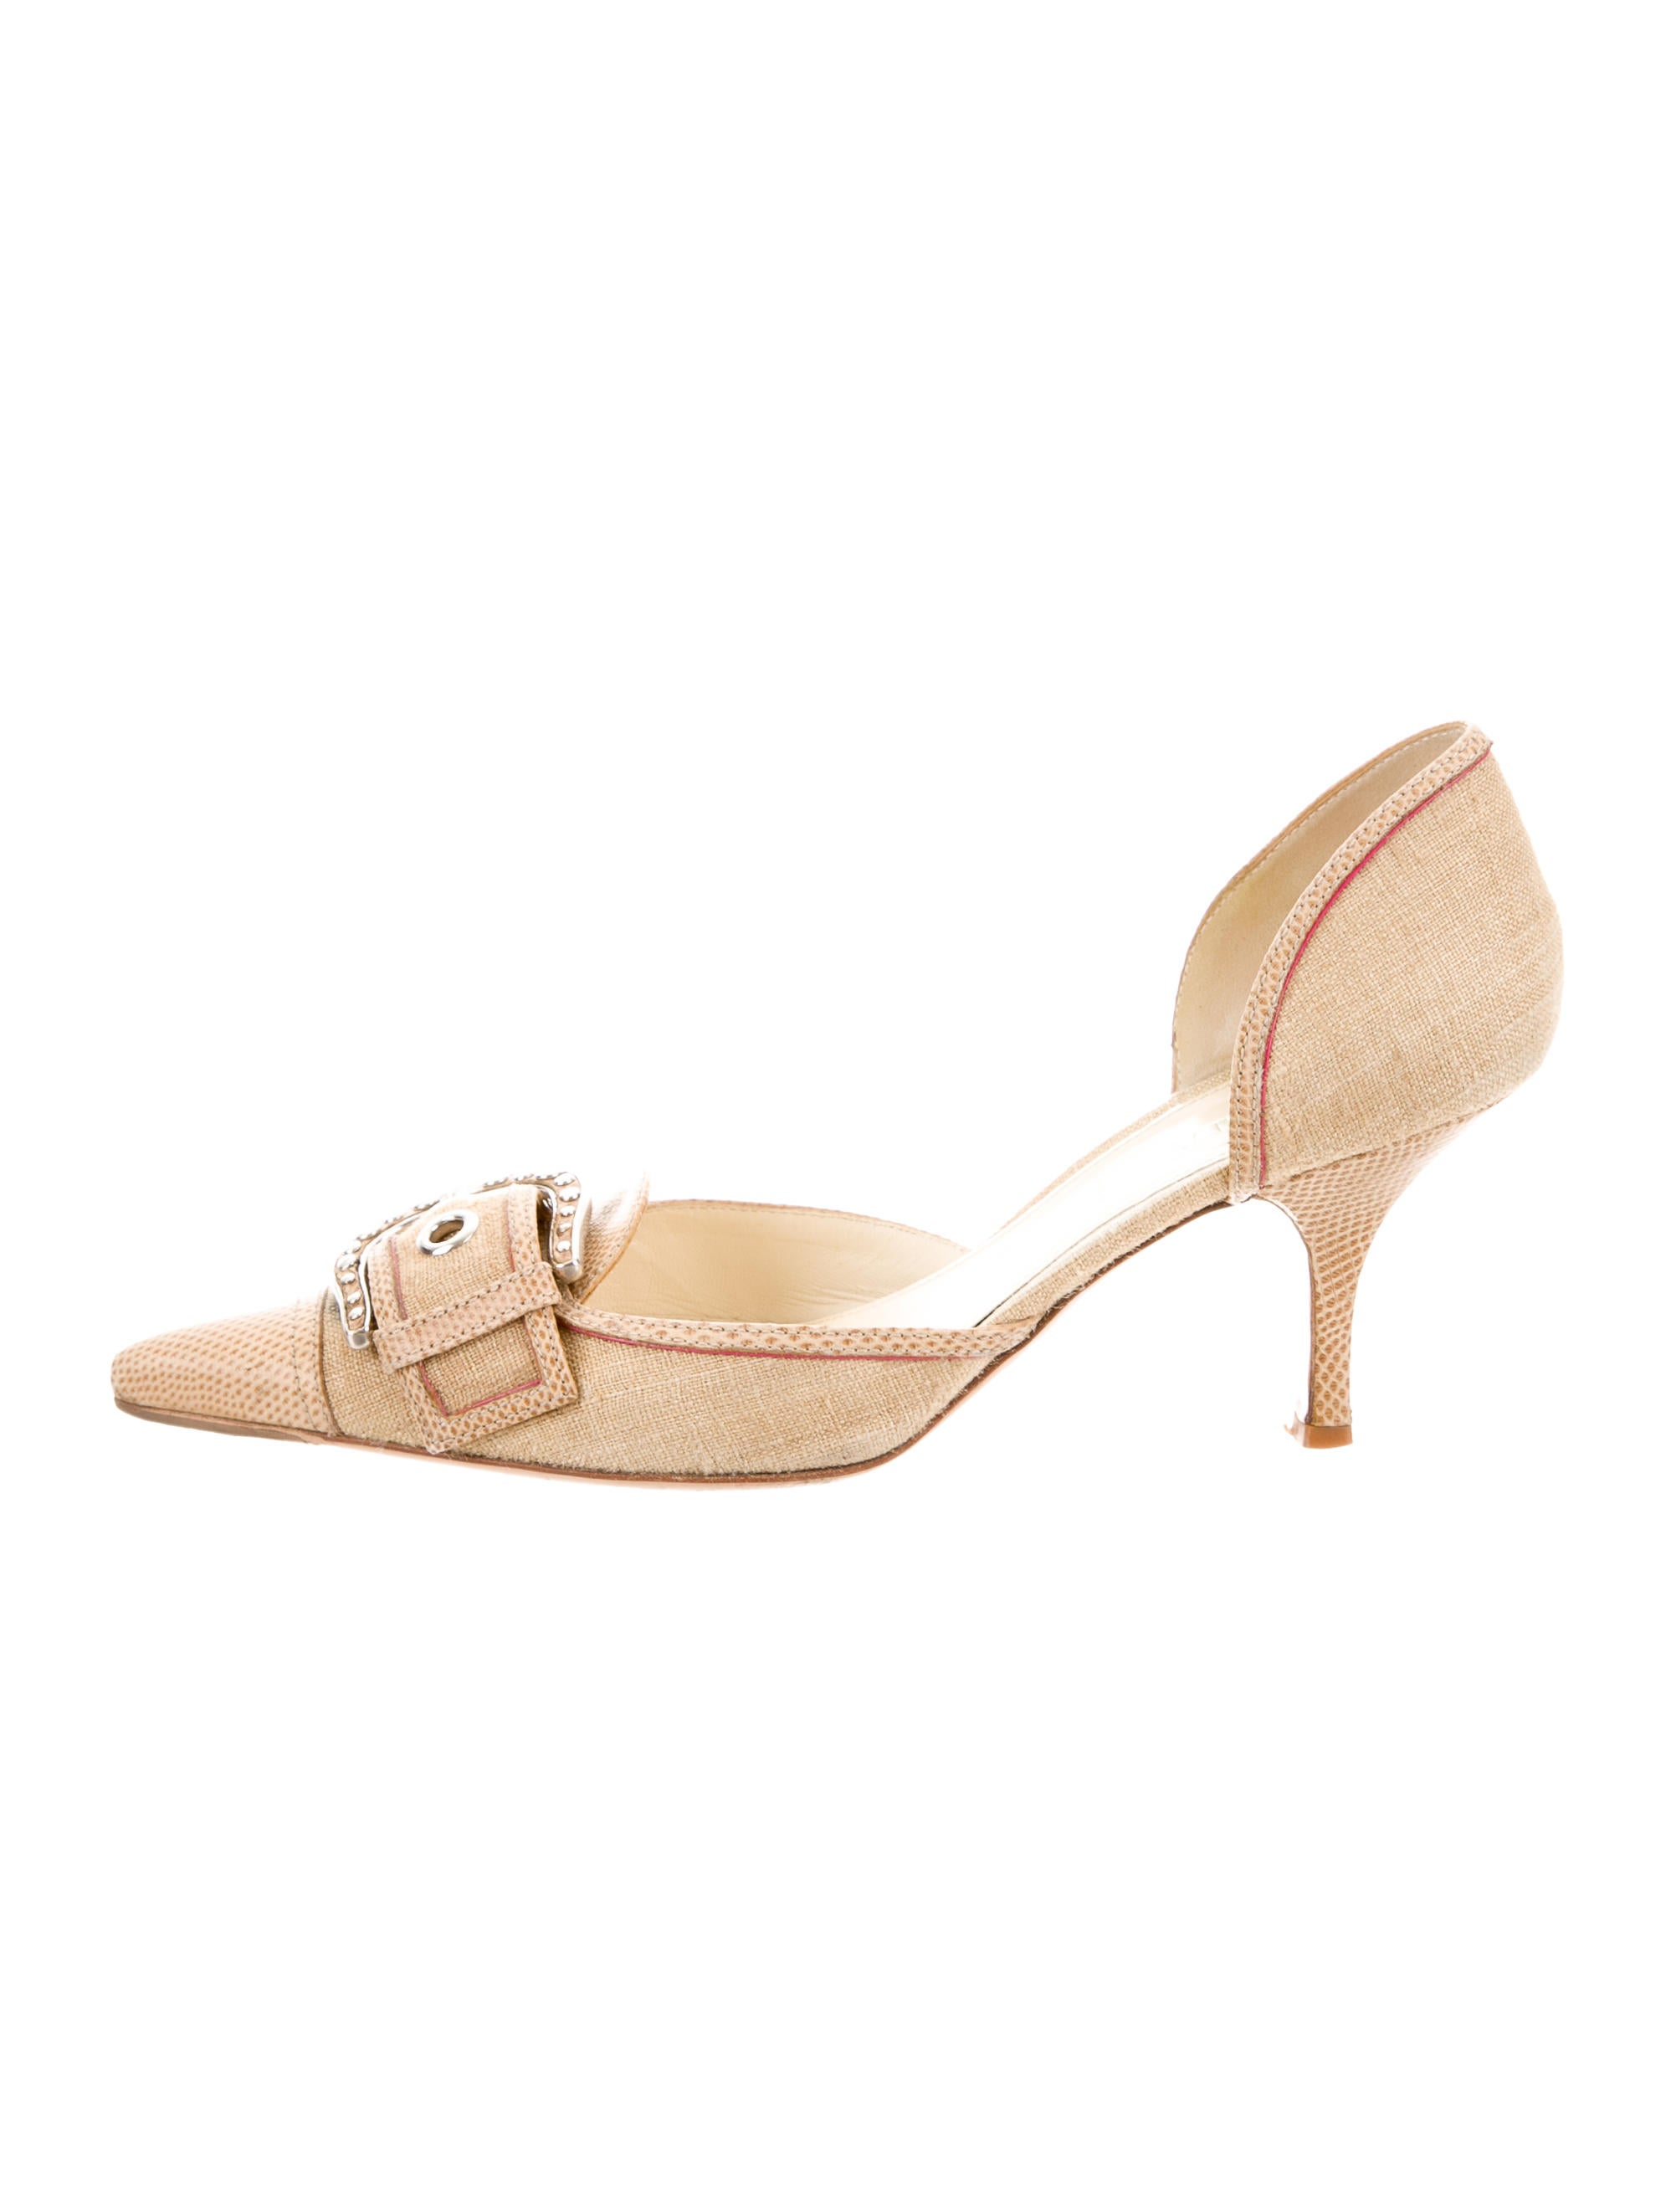 shop for online Prada Karung Slingback Pumps cheap sale low cost shop offer cheap price tHFw7Qv